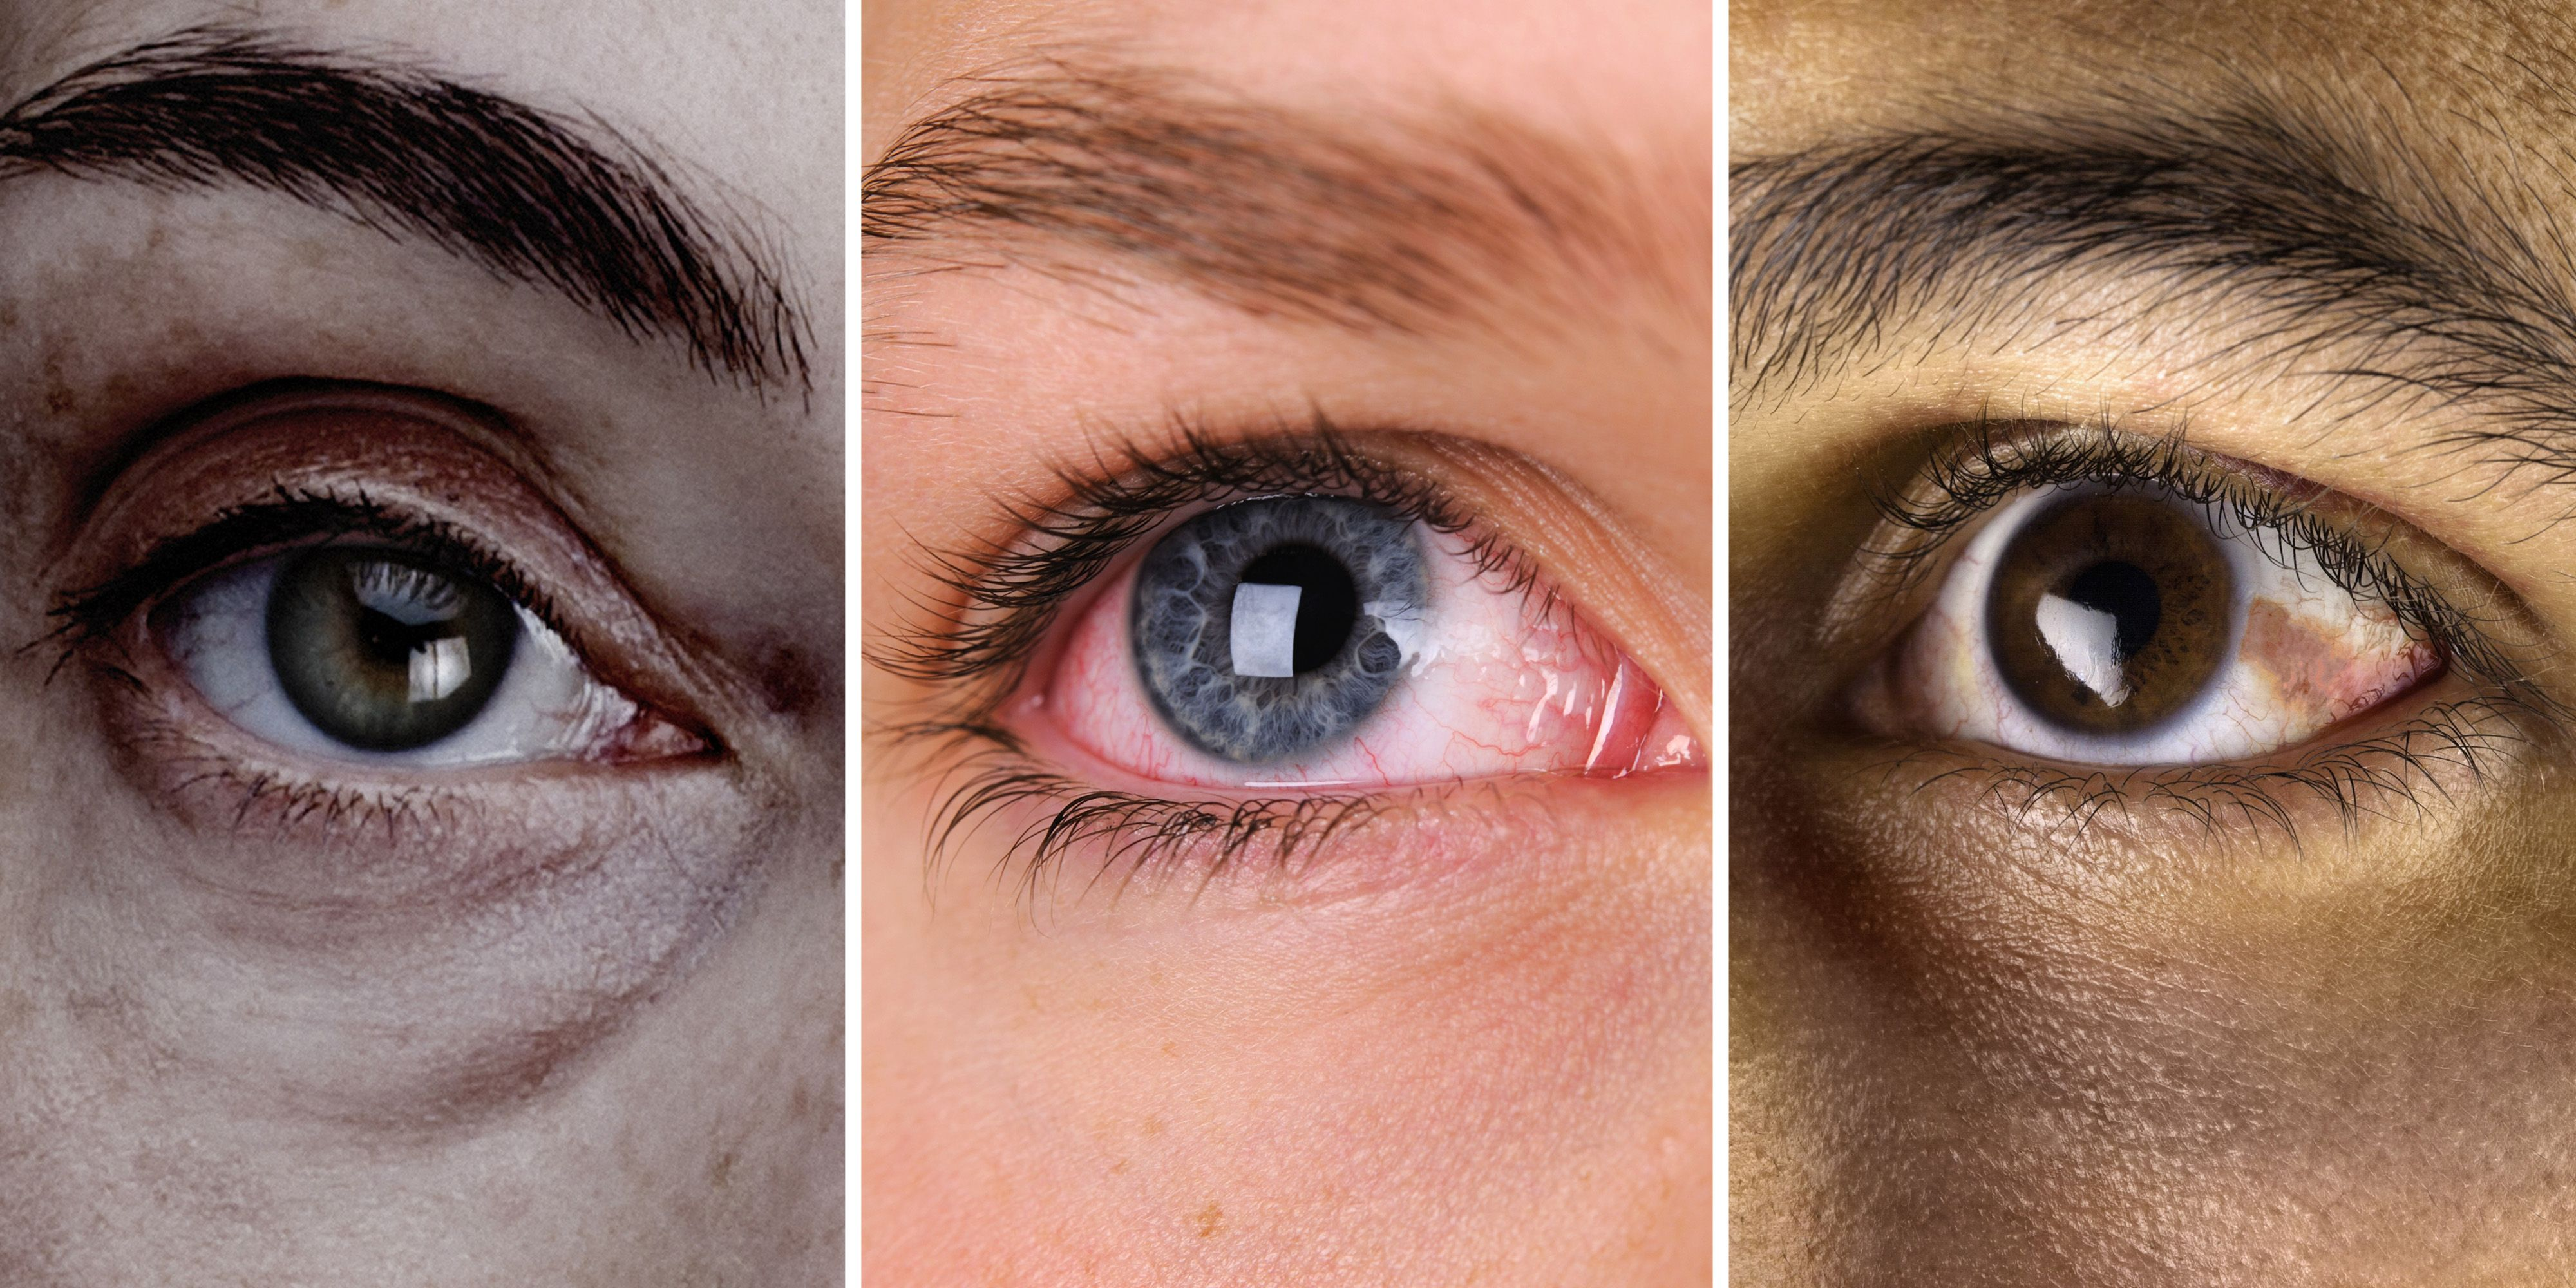 Eye Health: The Warning Signs To Watch Out For advise